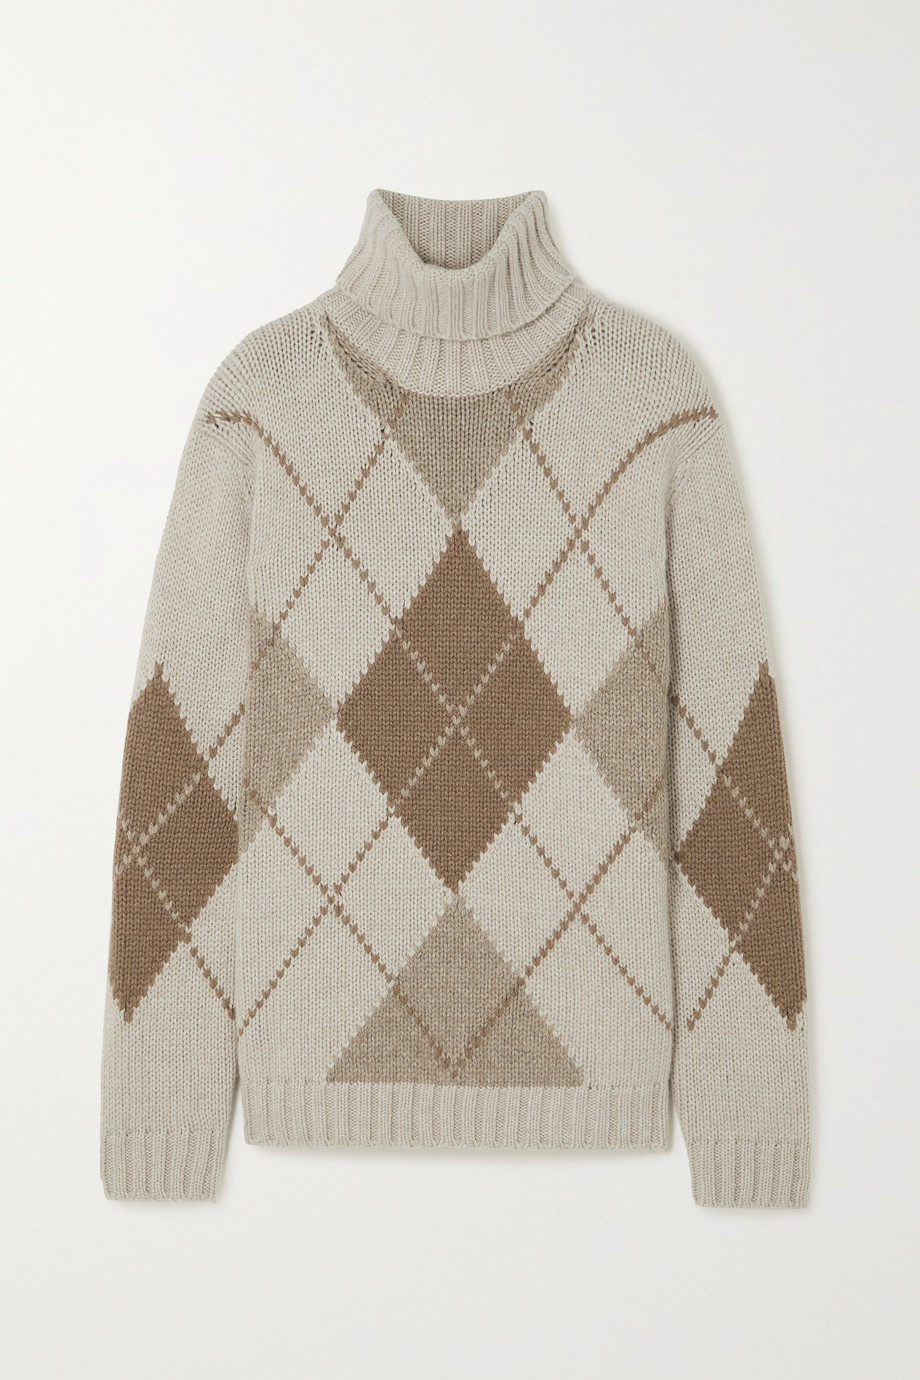 Loro Piana Macdougal argyle cashmere turtleneck sweater